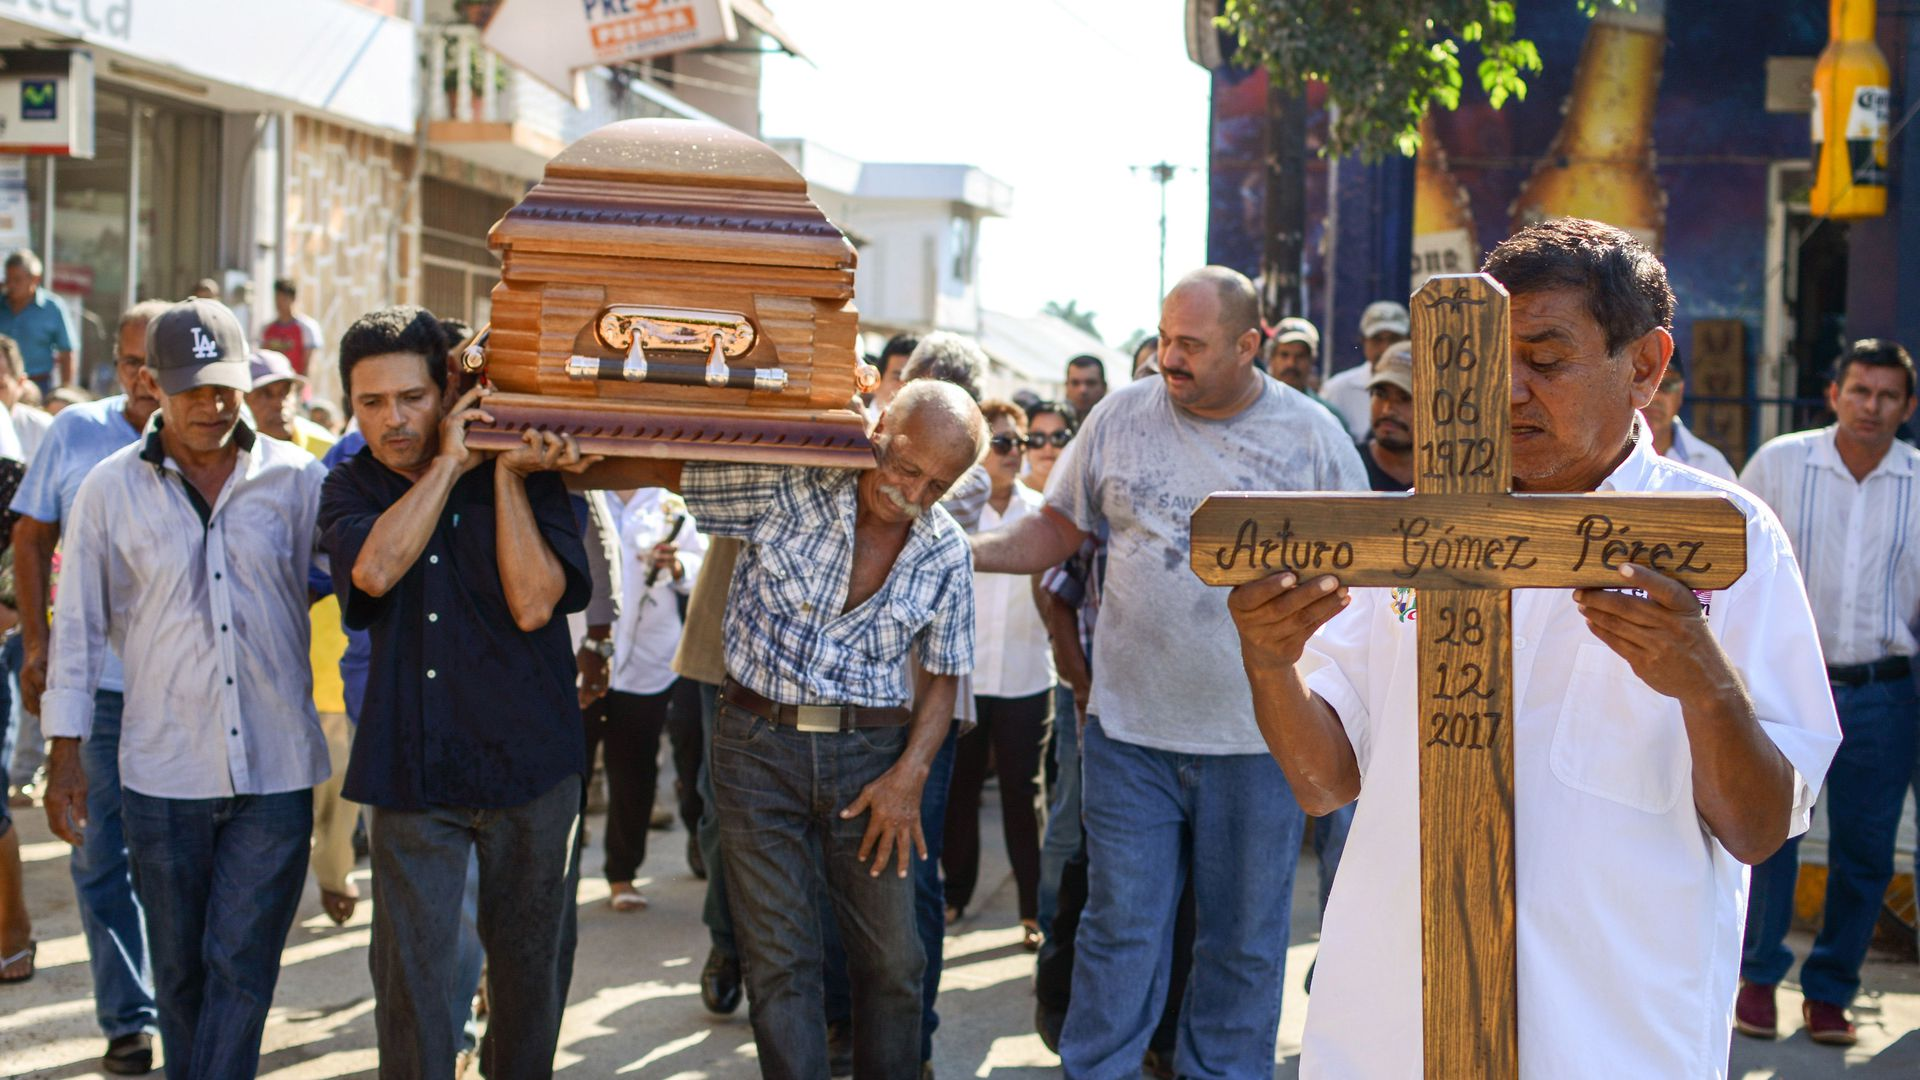 People carry a wooden coffin and wooden cross in Mexico down the street.